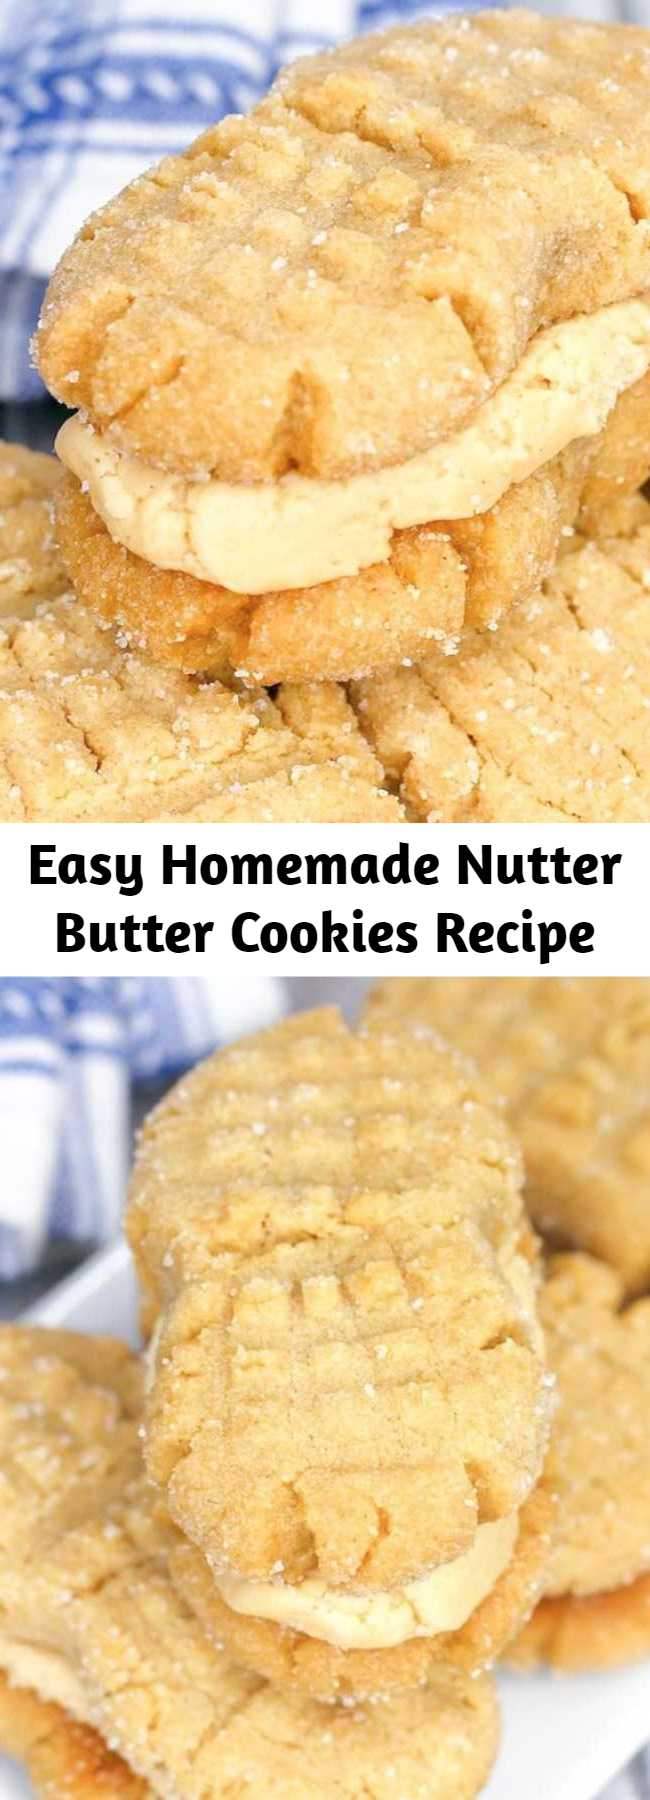 """Easy Homemade Nutter Butter Cookies Recipe - Soft peanut butter cookies filled with luscious peanut butter cream — these Homemade Nutter Butter cookies might just be better than the """"real"""" thing! #cookies #peanutbutter #desserts"""